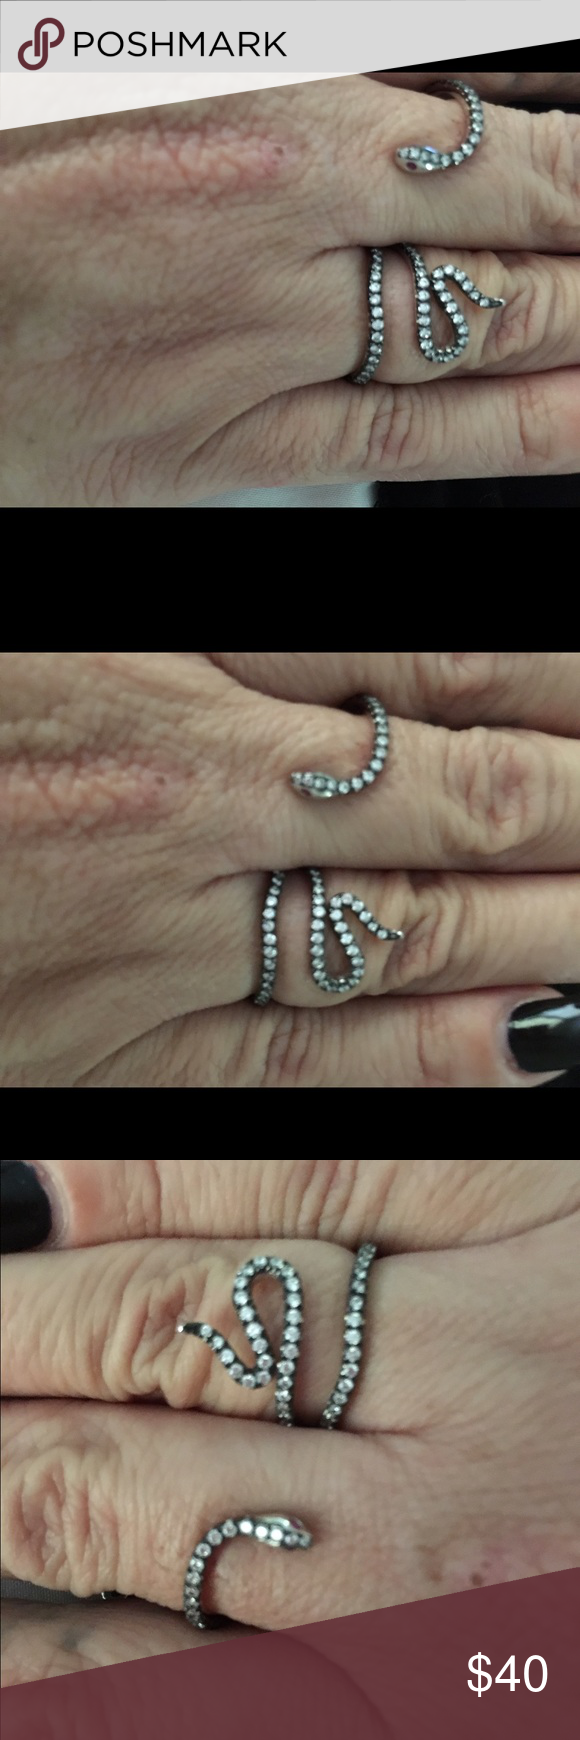 Luxeout double finger snake ring. Used a few time Luxeout brand double finger snake ring. (hard to take pics of it) got a couple from the internet Luxe out Jewelry Rings